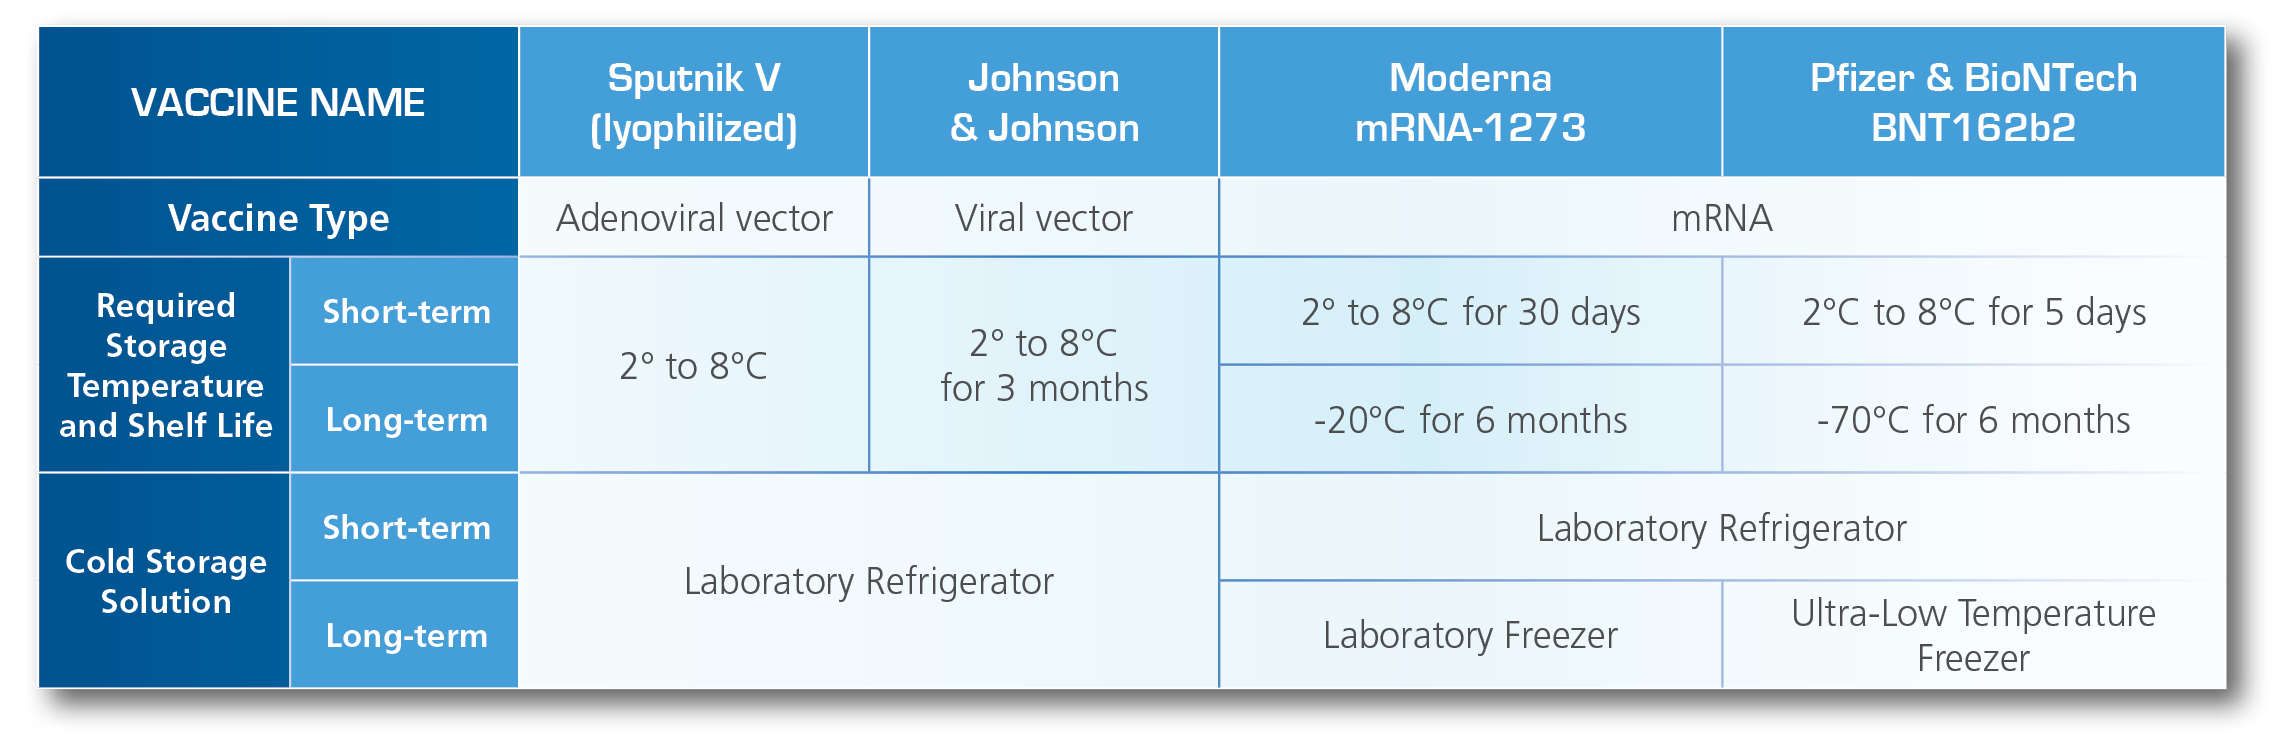 Figure-3-Comparison-of-Leading-COVID-19-Vaccines.png